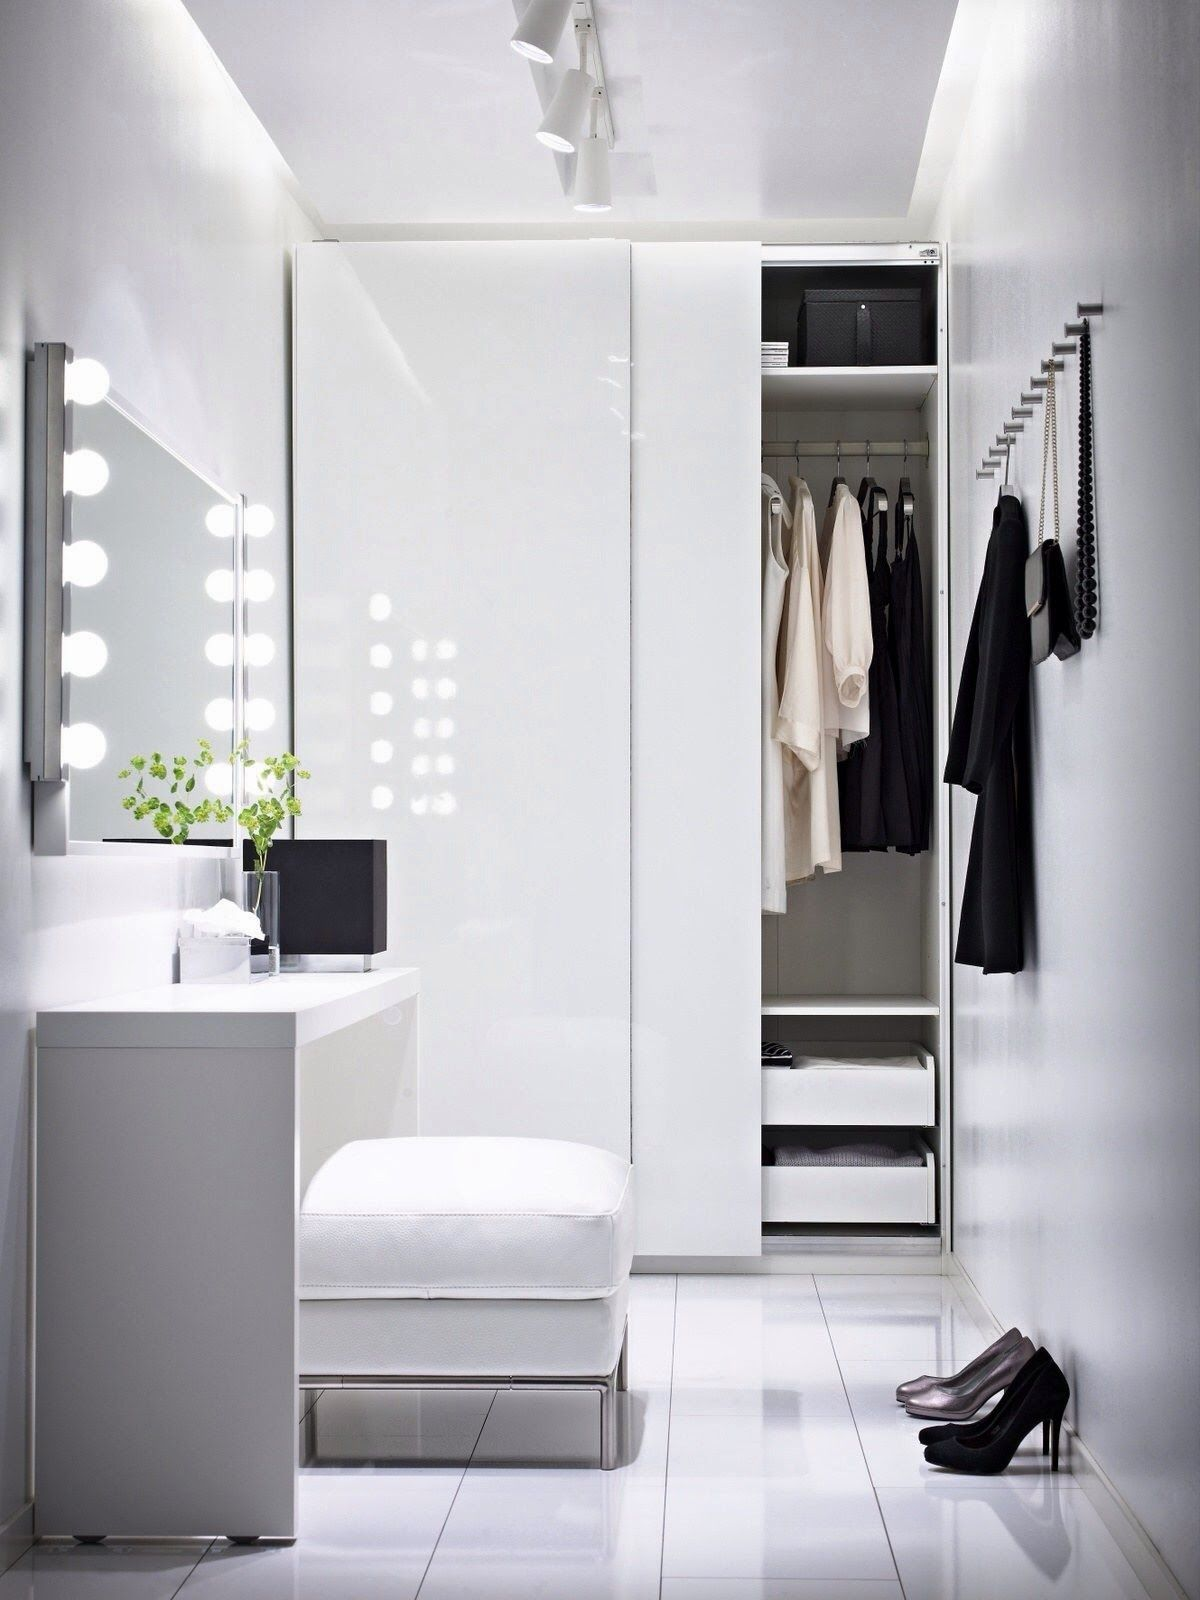 Traditional-Mirror-Light-With-Closet-Lighting-Fixtures-And-White-Theme